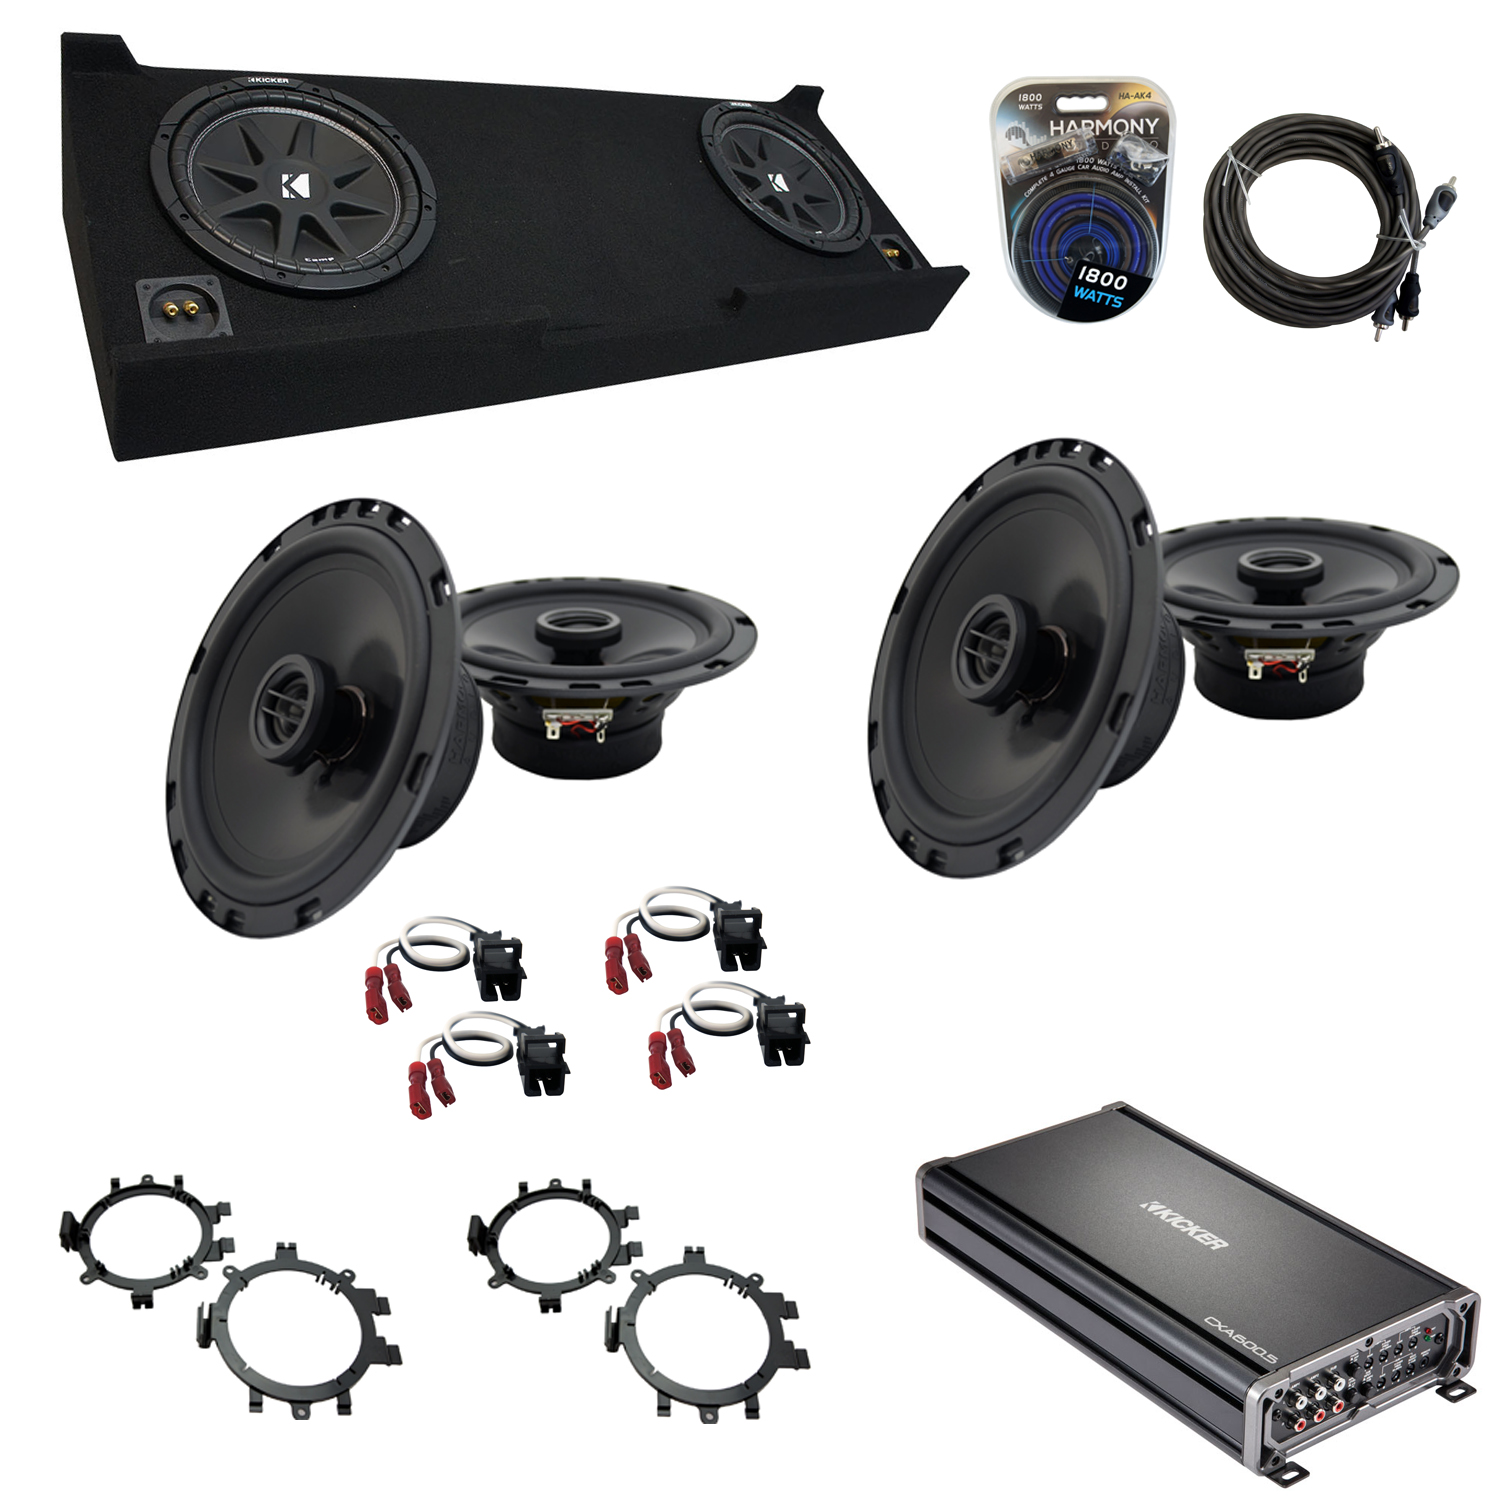 """Compatible with GMC Sierra 2007-2013 Crew Cab Truck Kicker Dual 10"""" Sub Box Speakers & Amp"""